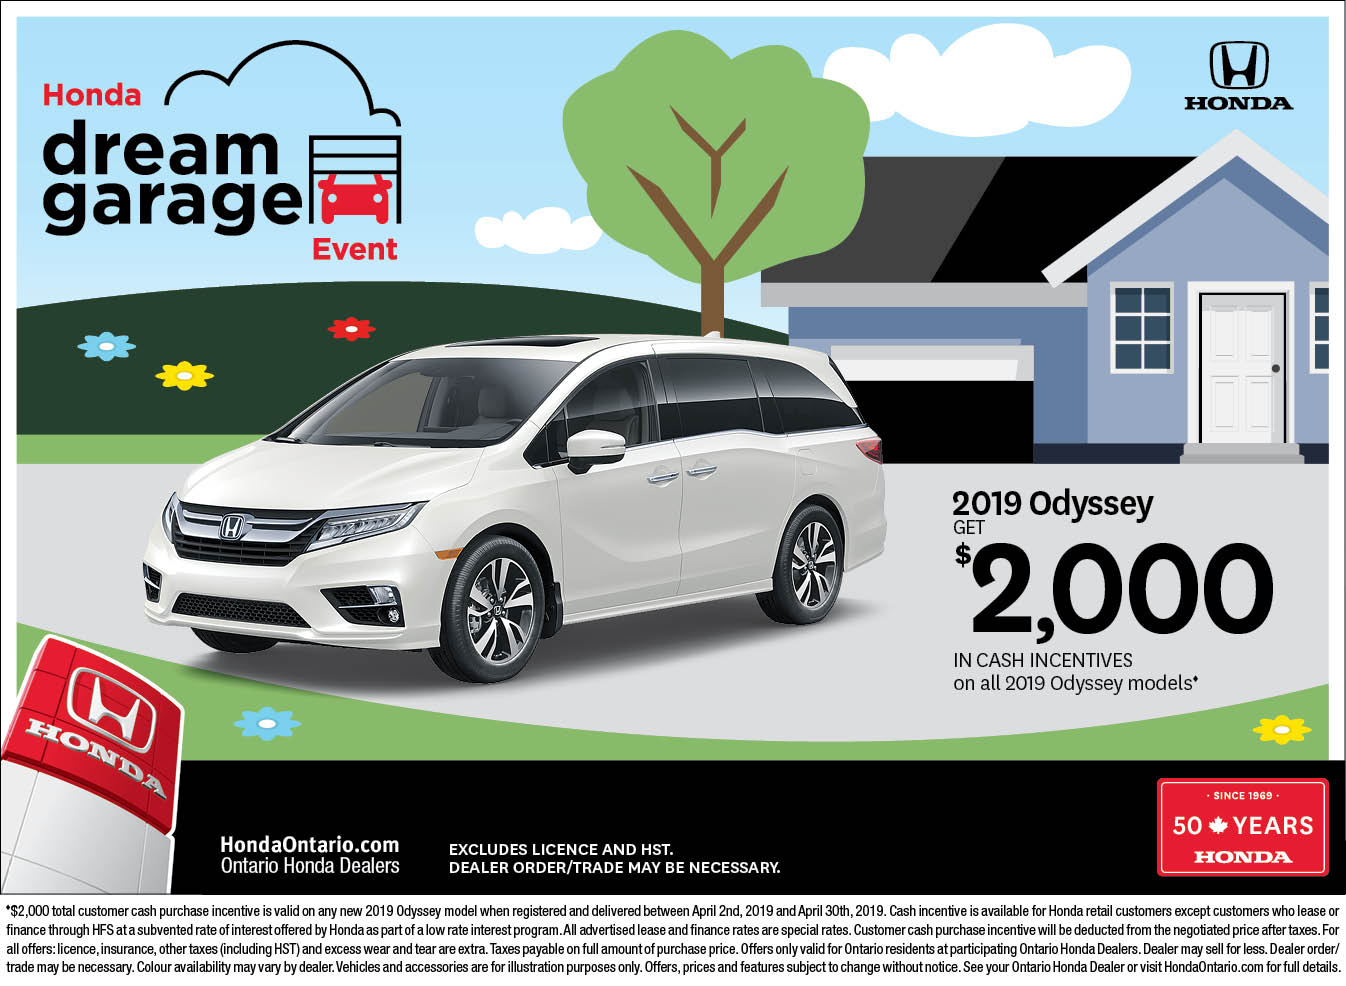 2019 Honda Odyssey | April Dream Garage